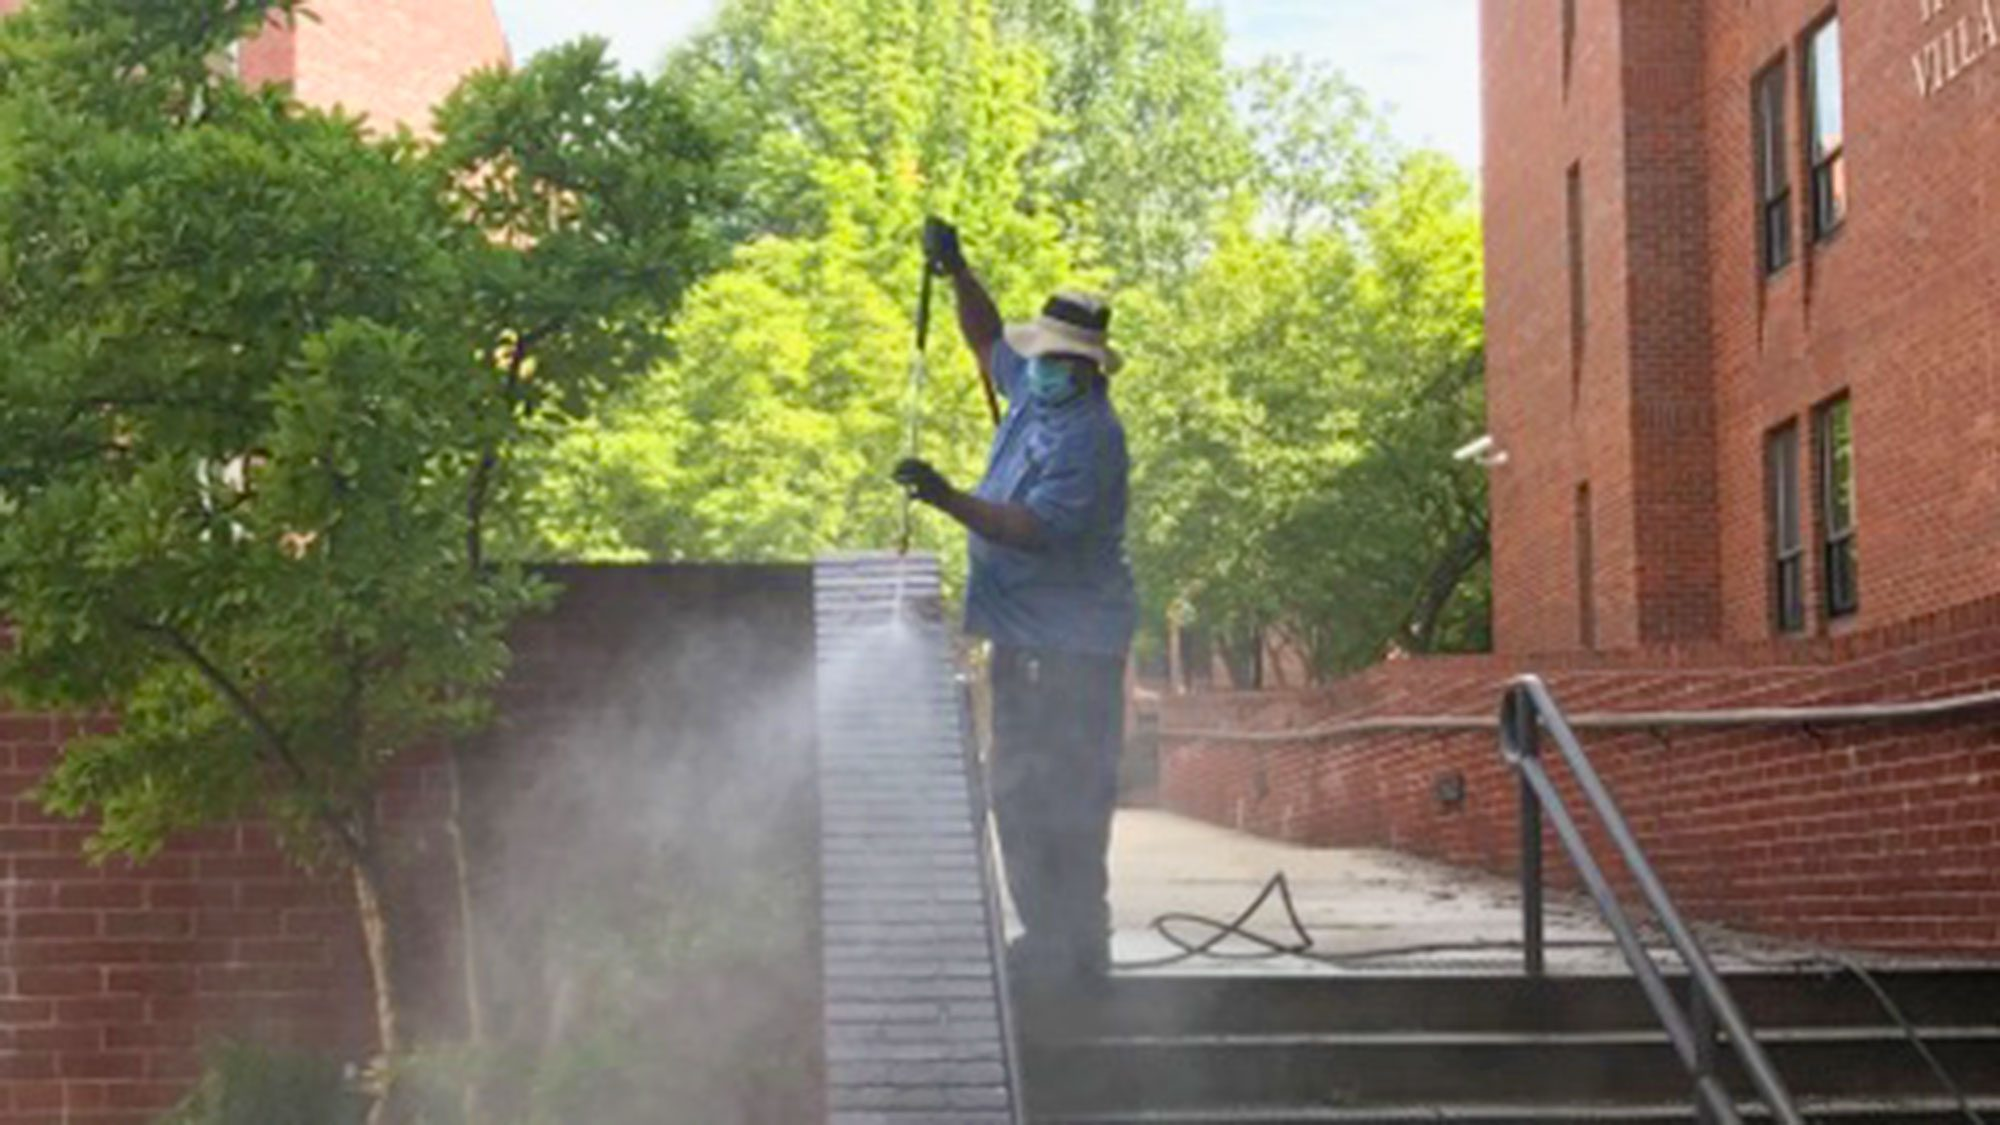 A man wears a mask while pressure washing the brick around stairs on campus.